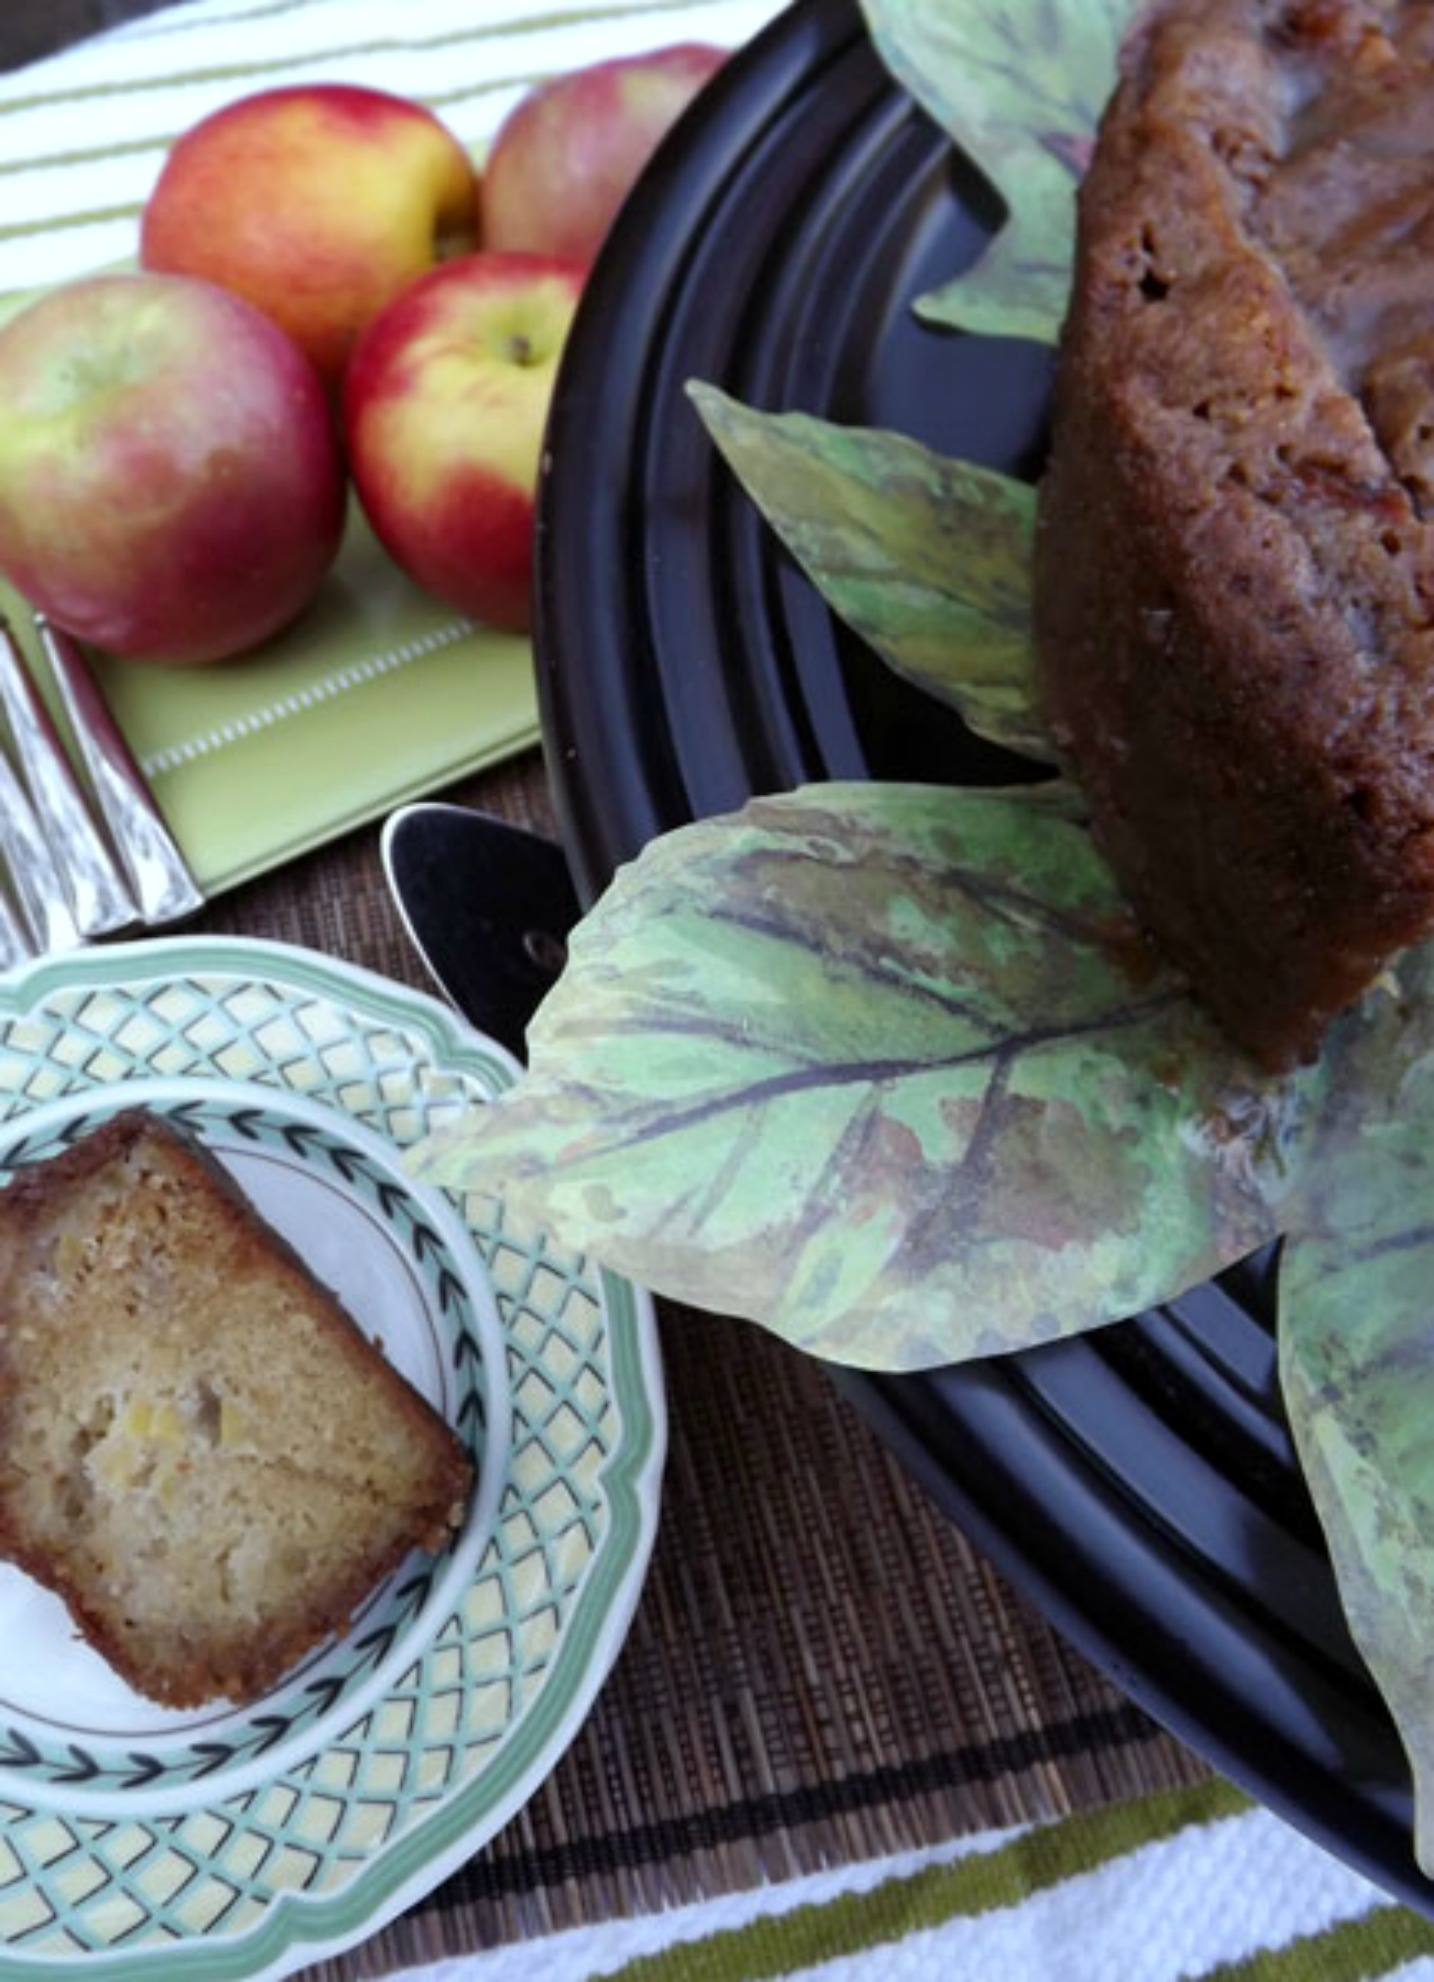 Caramel Apple Cake is a wonderfully easy cake to make for fall tailgates, festivals, or Saturday morning coffee.